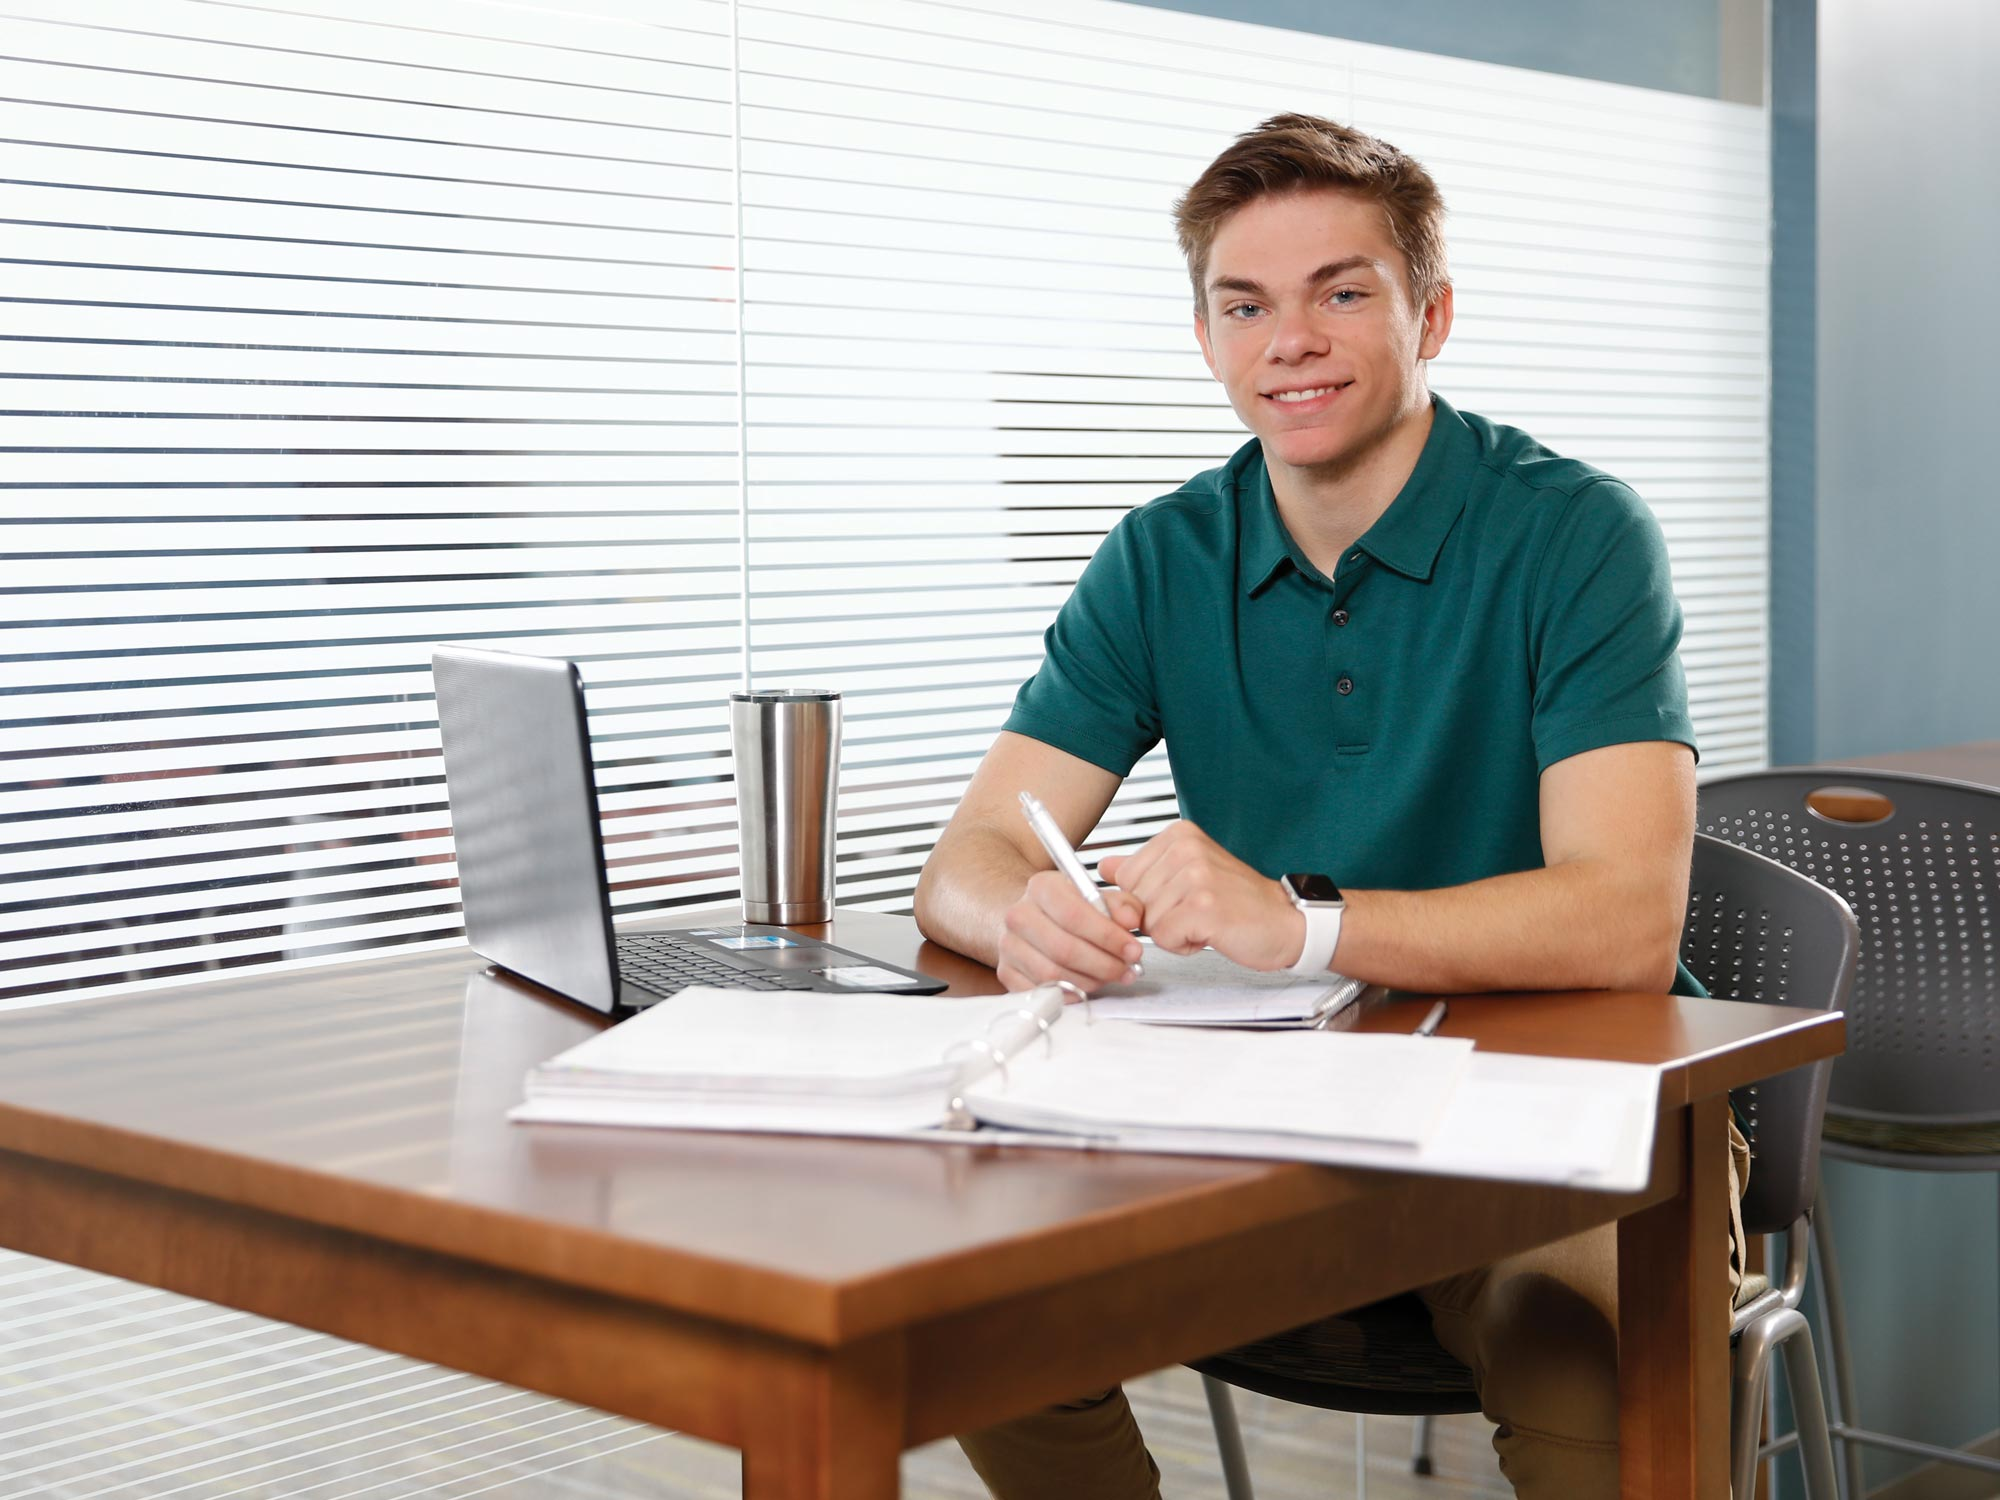 Male student sitting at table with binder and laptop